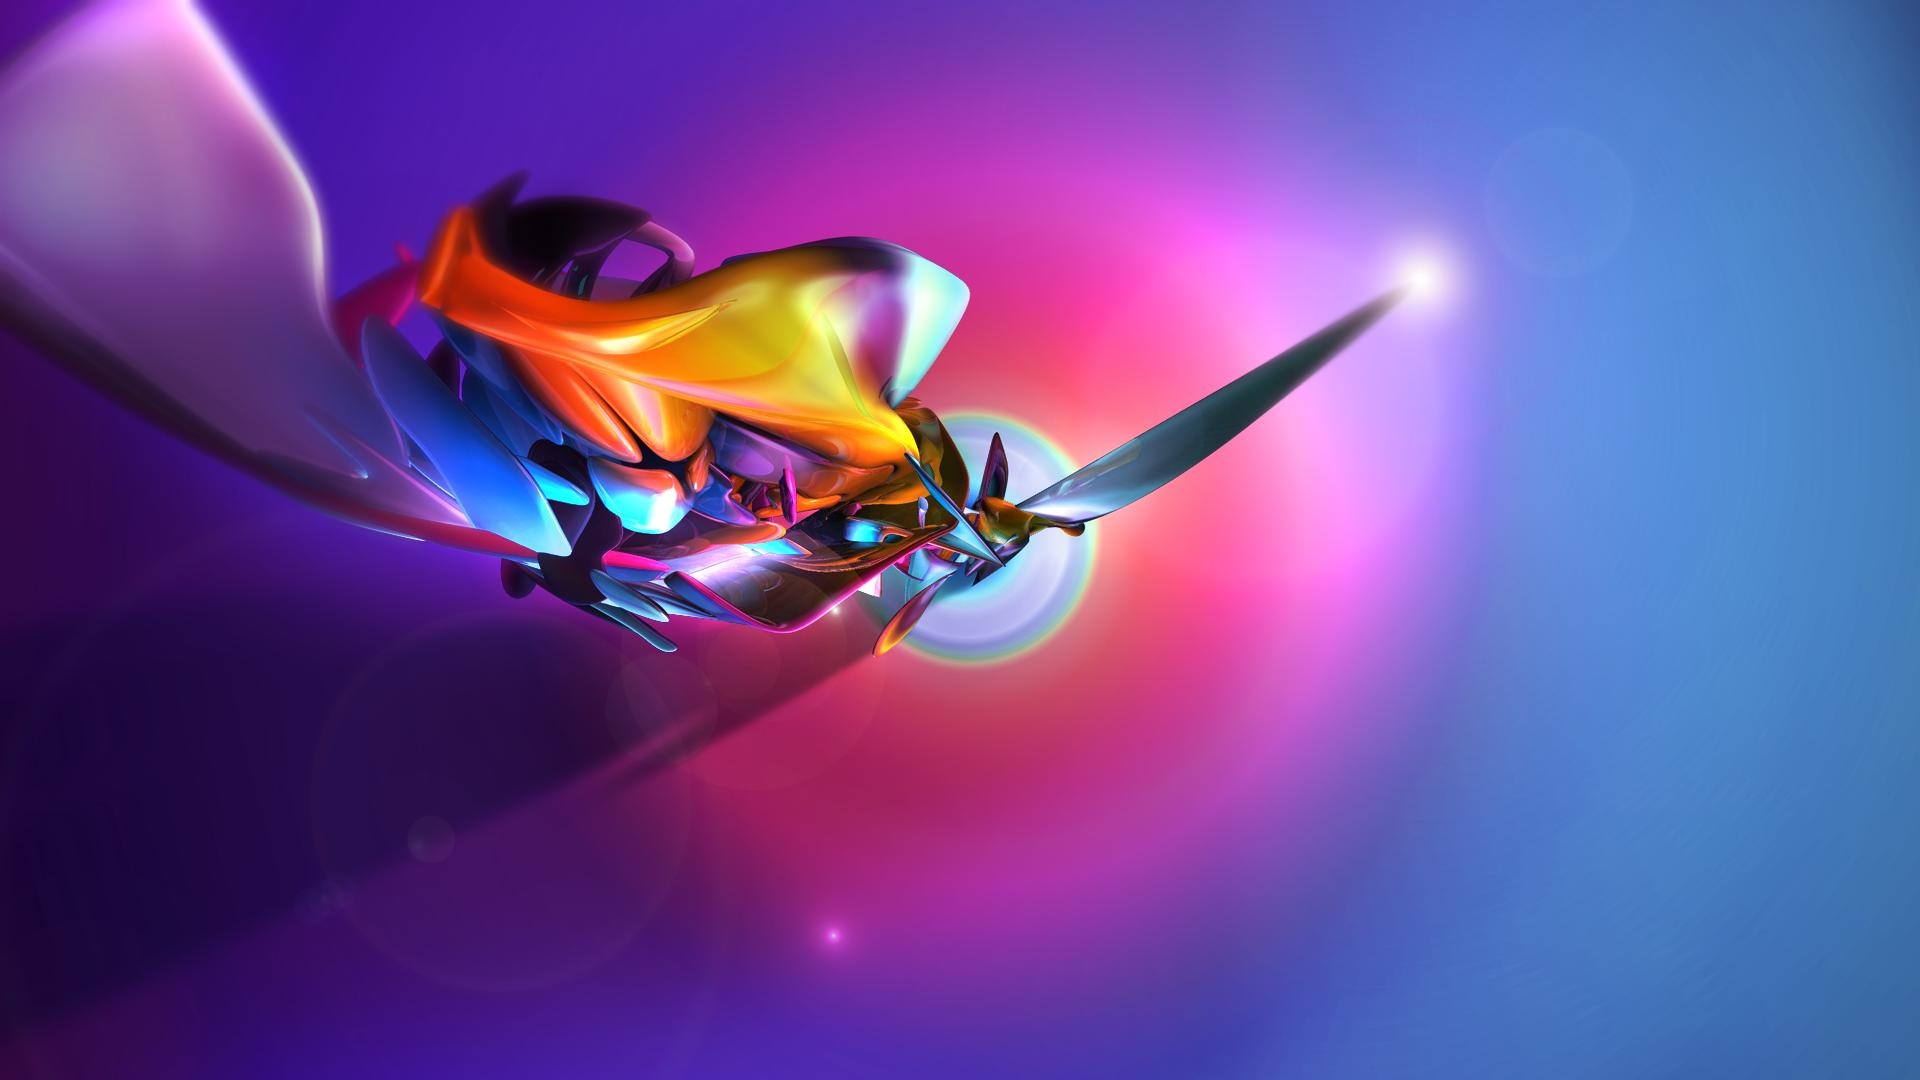 Free Colorful Free Modern Abstract Wallpaper Downloads Wallpaper